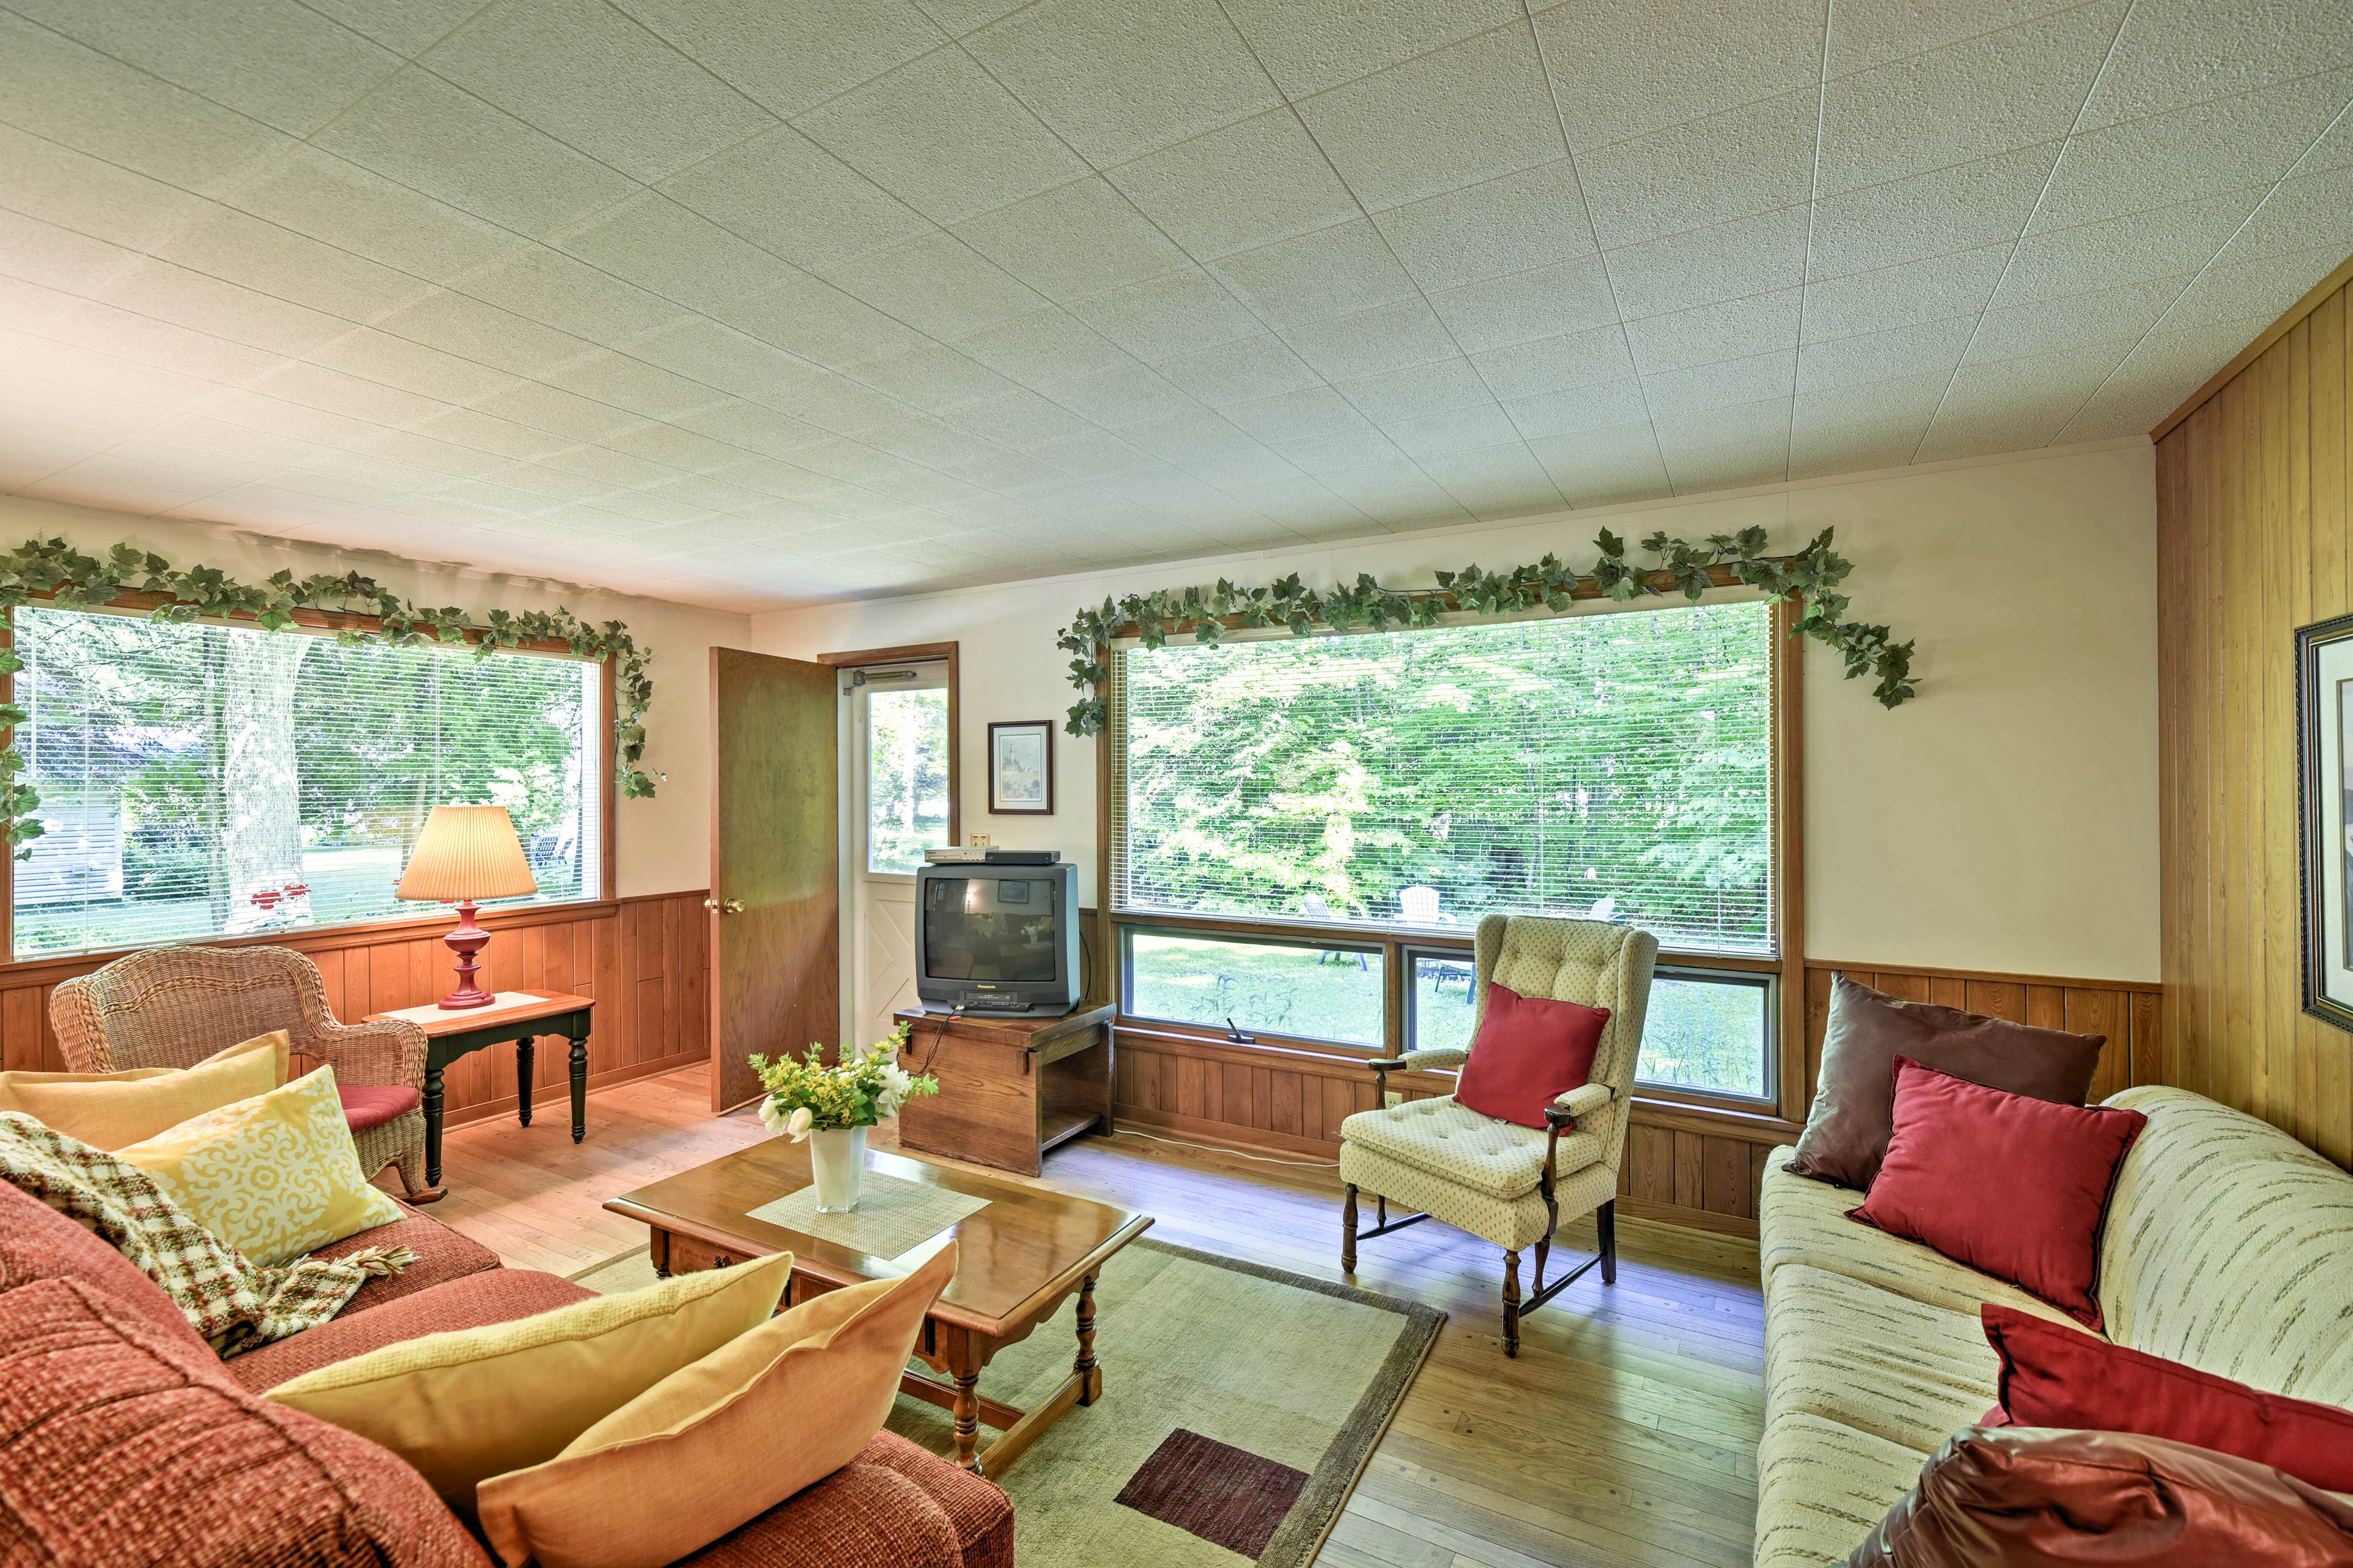 Check the availability of other on-site rental units for extra accommodations.